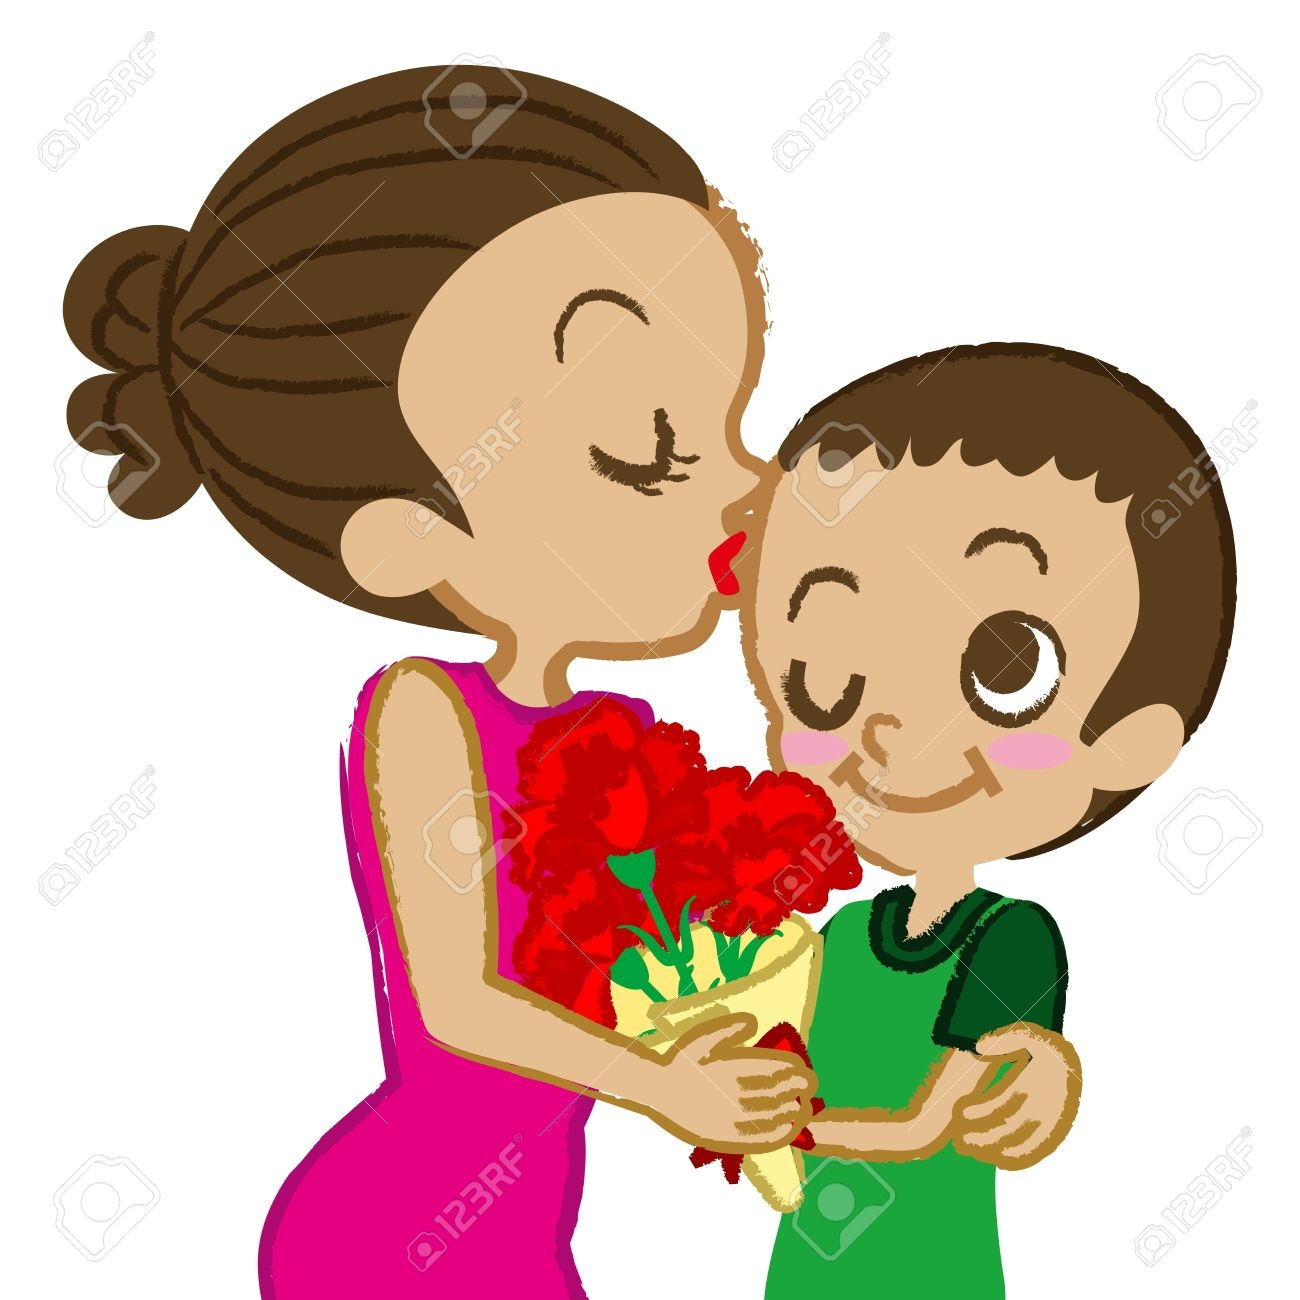 Mother kiss clipart 20 free Cliparts   Download images on ... (1300 x 1300 Pixel)